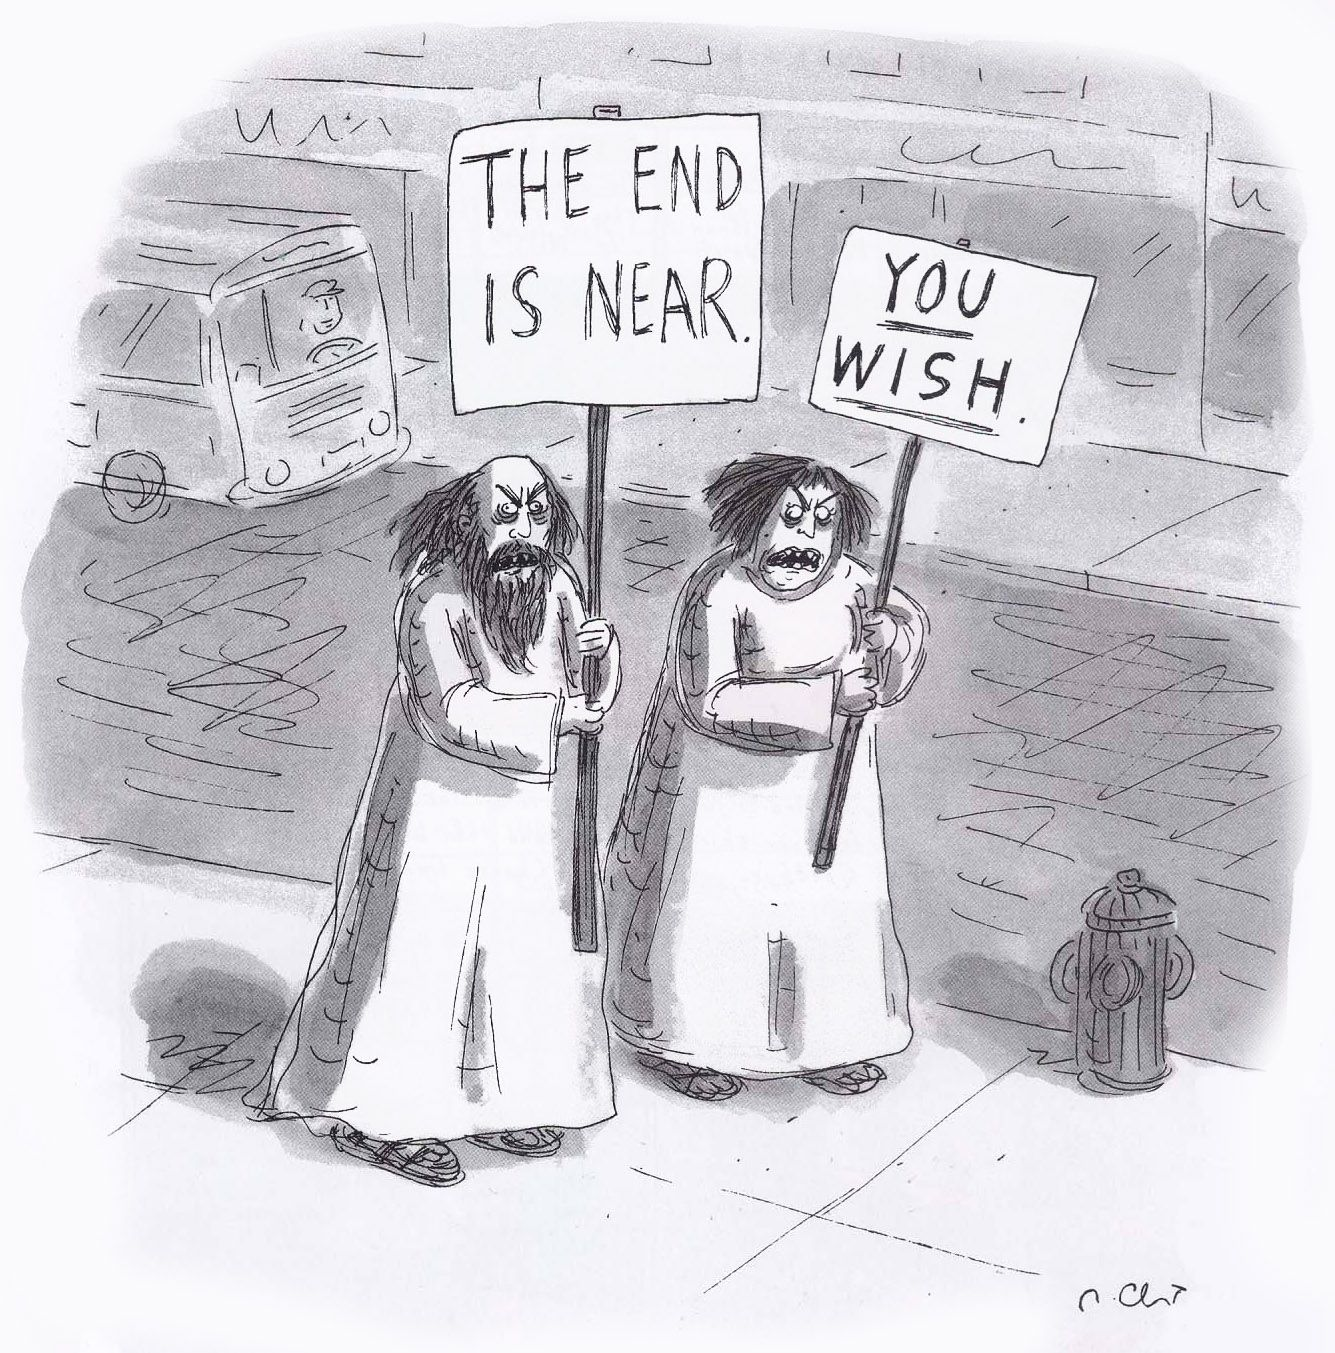 Roz Chast, The End is Near, published May 19, 1997